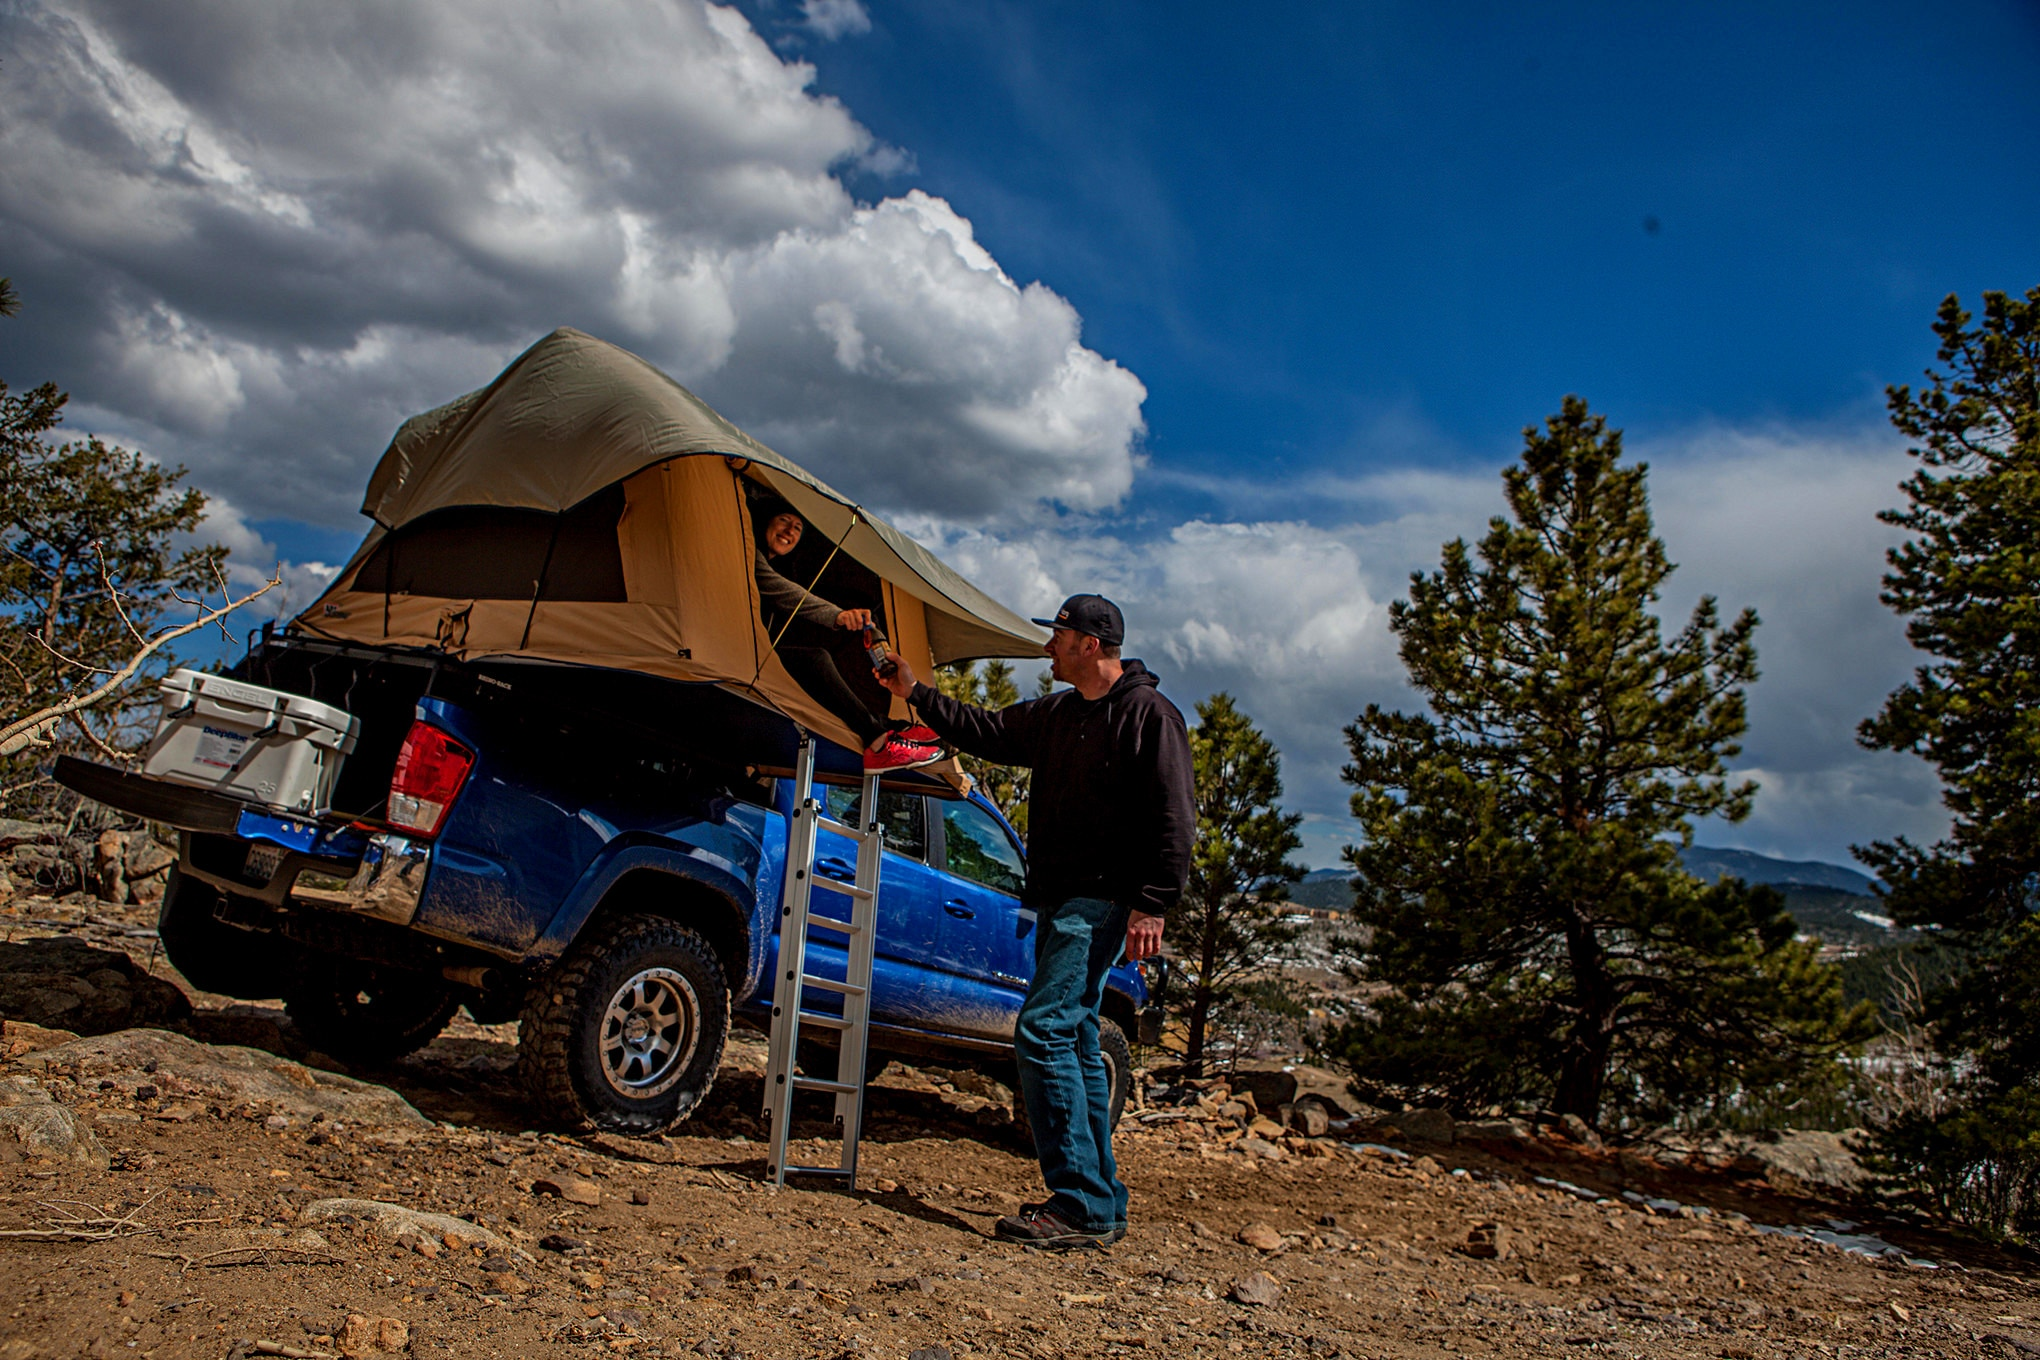 017 arb tacoma roof top tent open